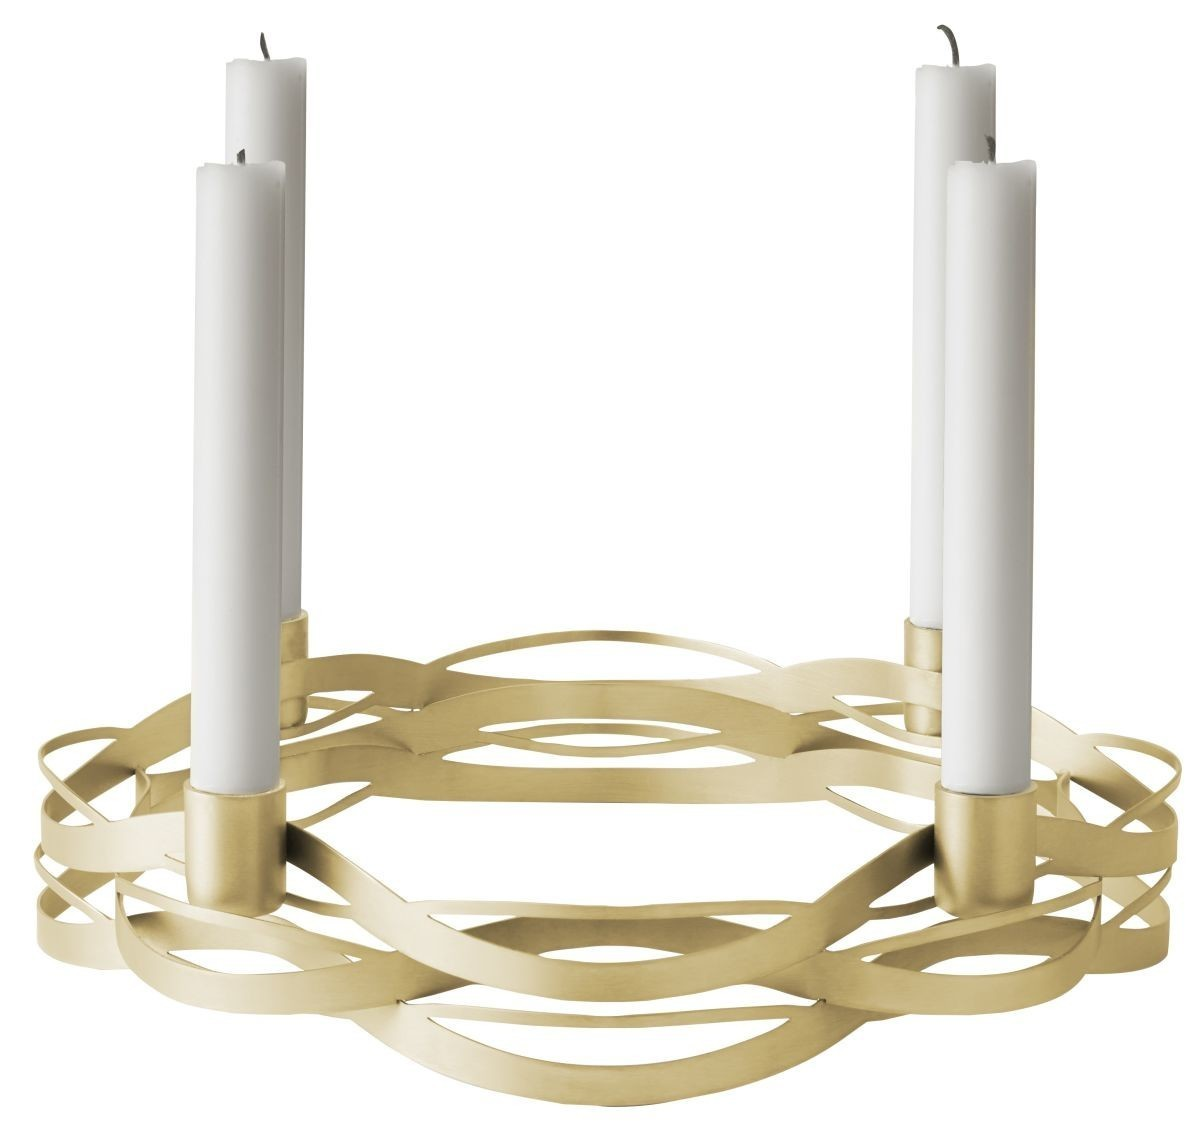 stelton Tangle Adventskranz-Kerzenhalter stelton-10206